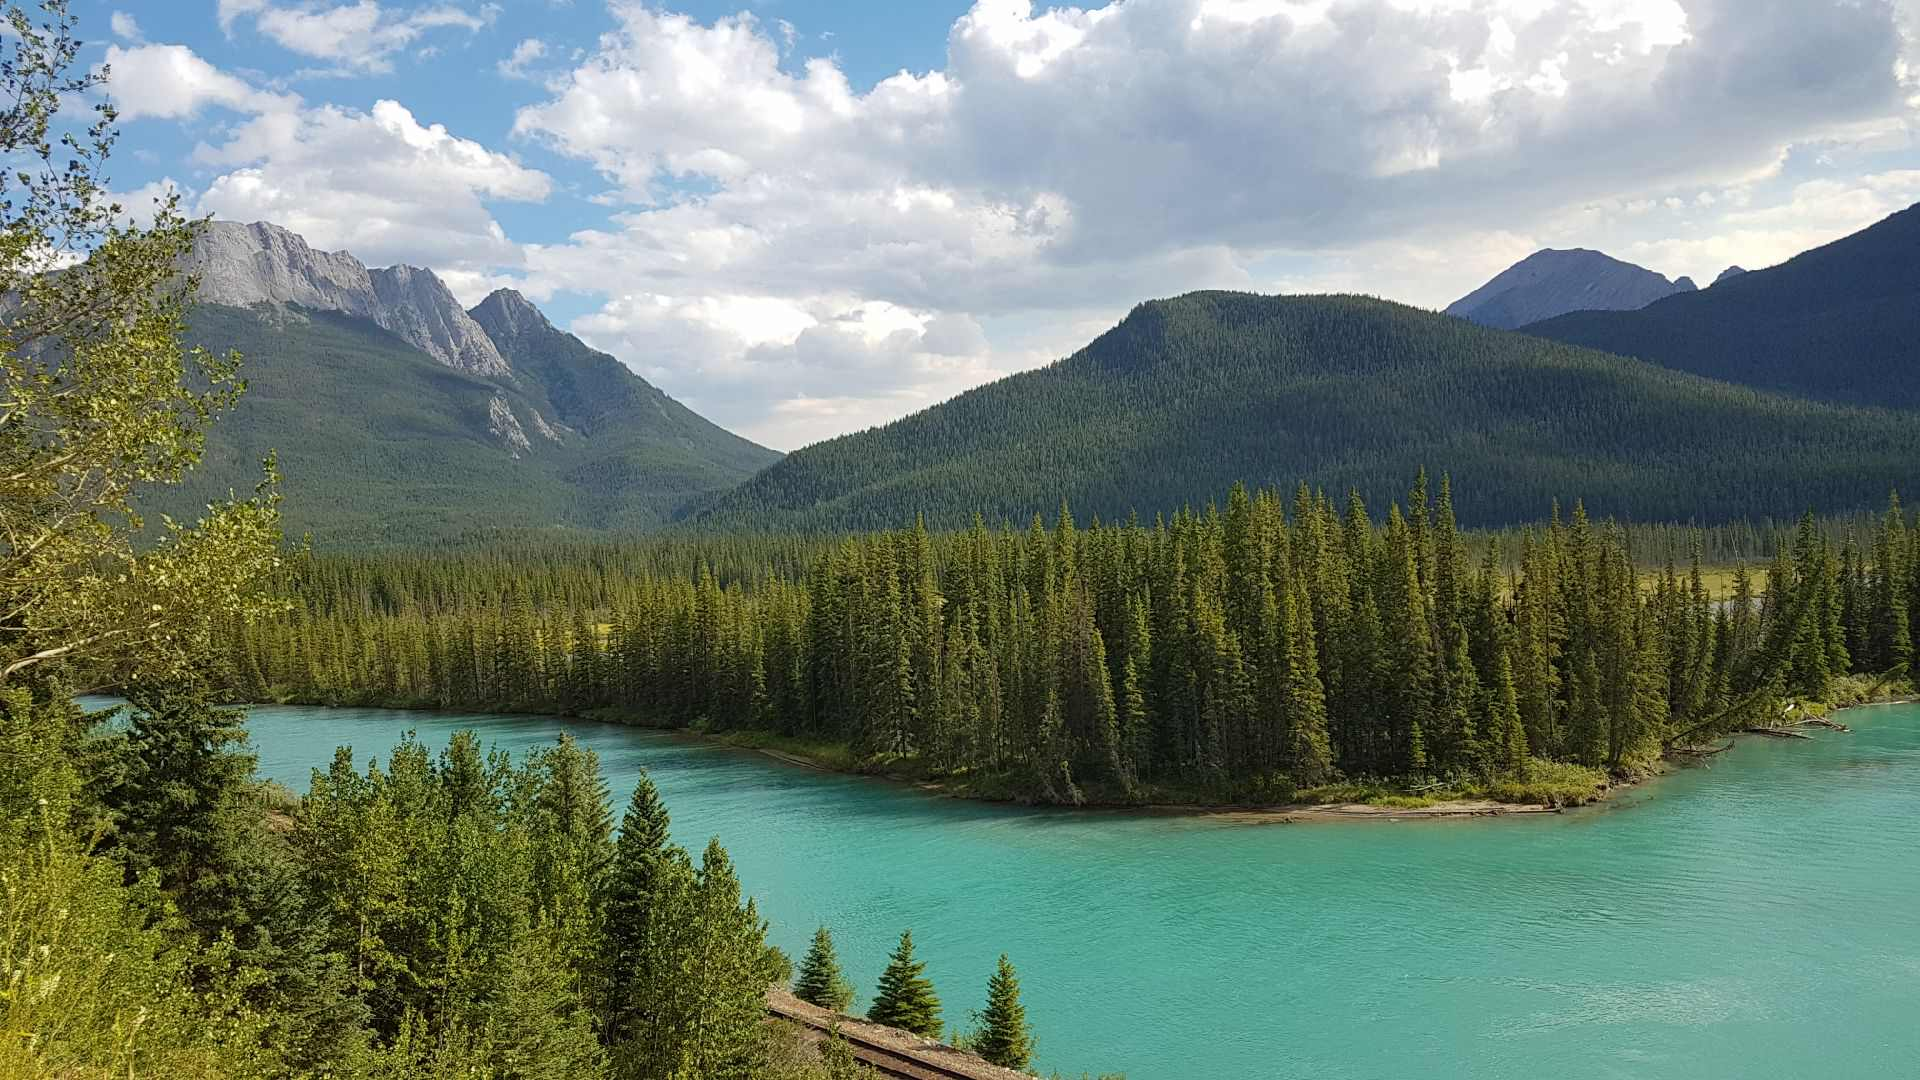 One of the views from the Bow Valley Parkway of the Bow River.